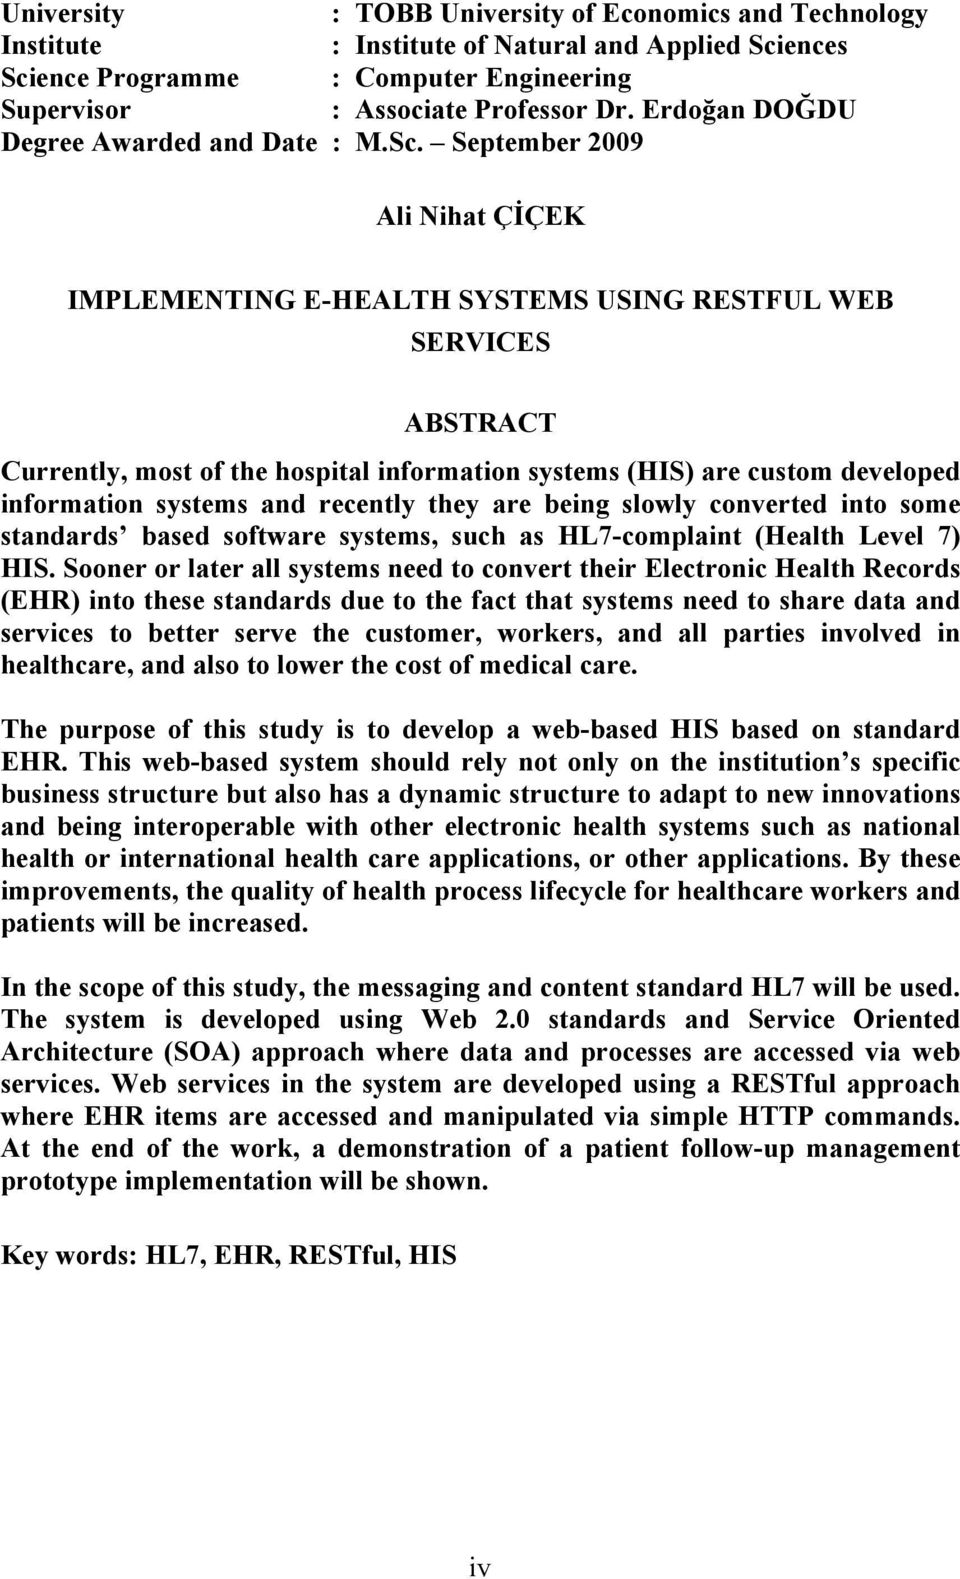 September 2009 Ali Nihat ÇİÇEK IMPLEMENTING E-HEALTH SYSTEMS USING RESTFUL WEB SERVICES ABSTRACT Currently, most of the hospital information systems (HIS) are custom developed information systems and